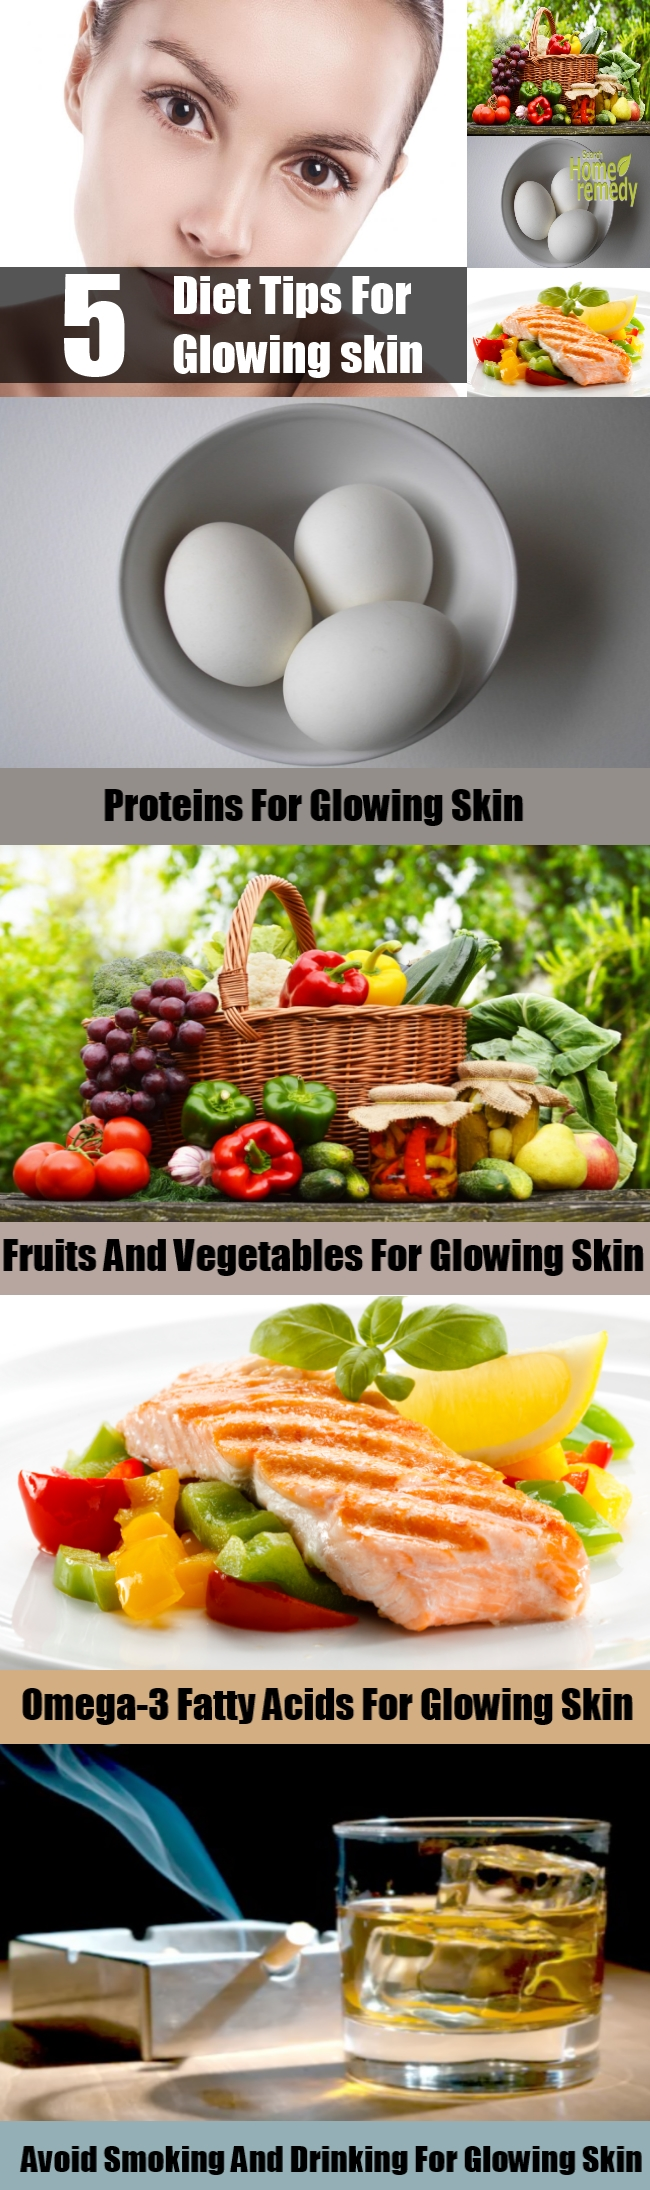 5 Great Diet Tips For Glowing skin